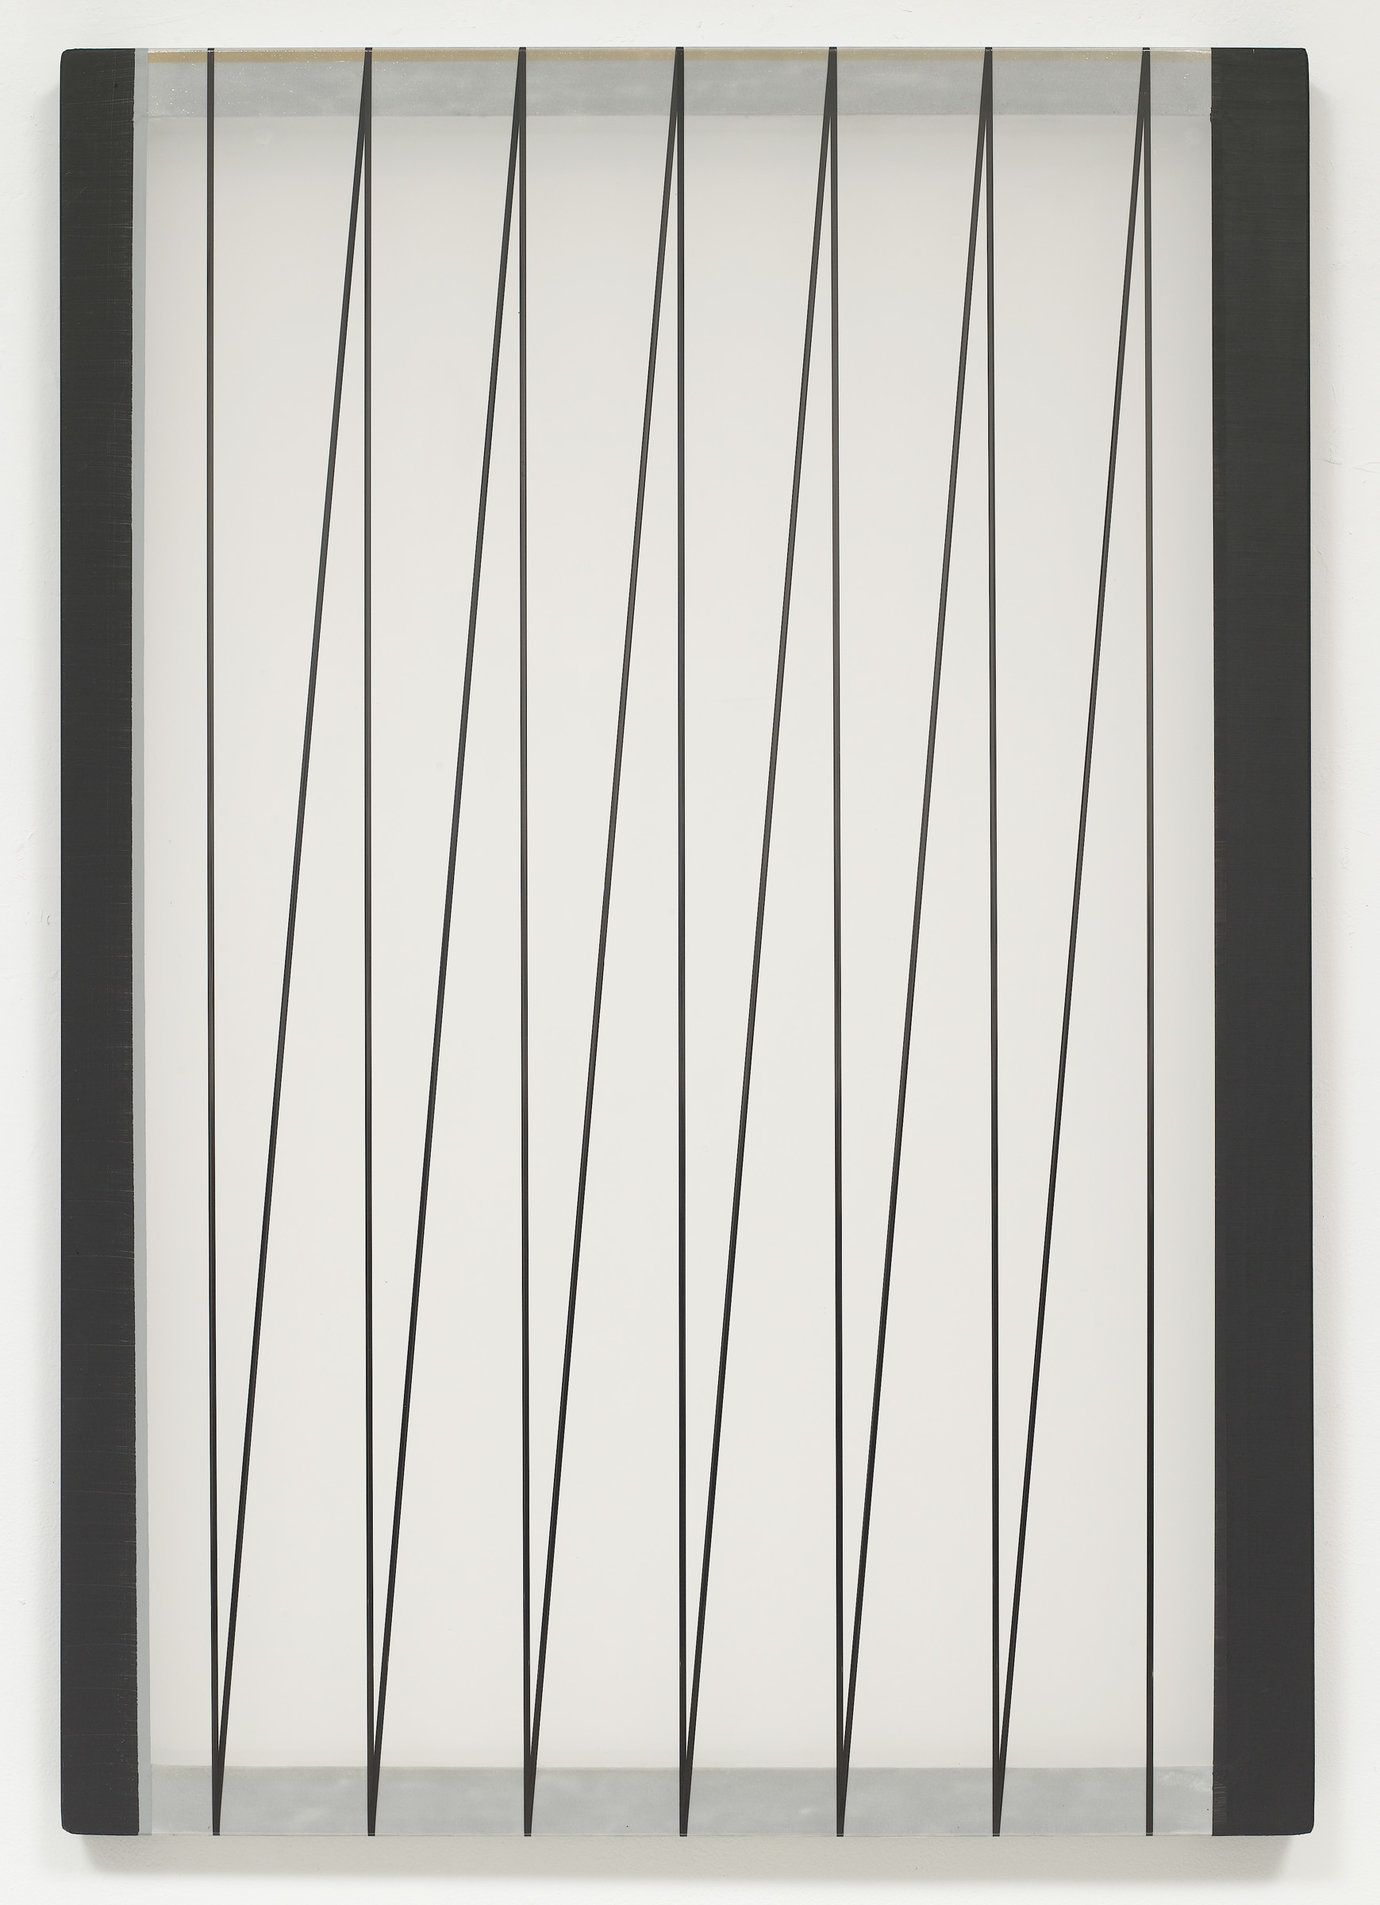 ", 2004. acrylic, magnetic tape mounted on polystyrene coated aluminum frame, 39-3/8"" x 27-1/2"" (100 cm x 70 cm)."